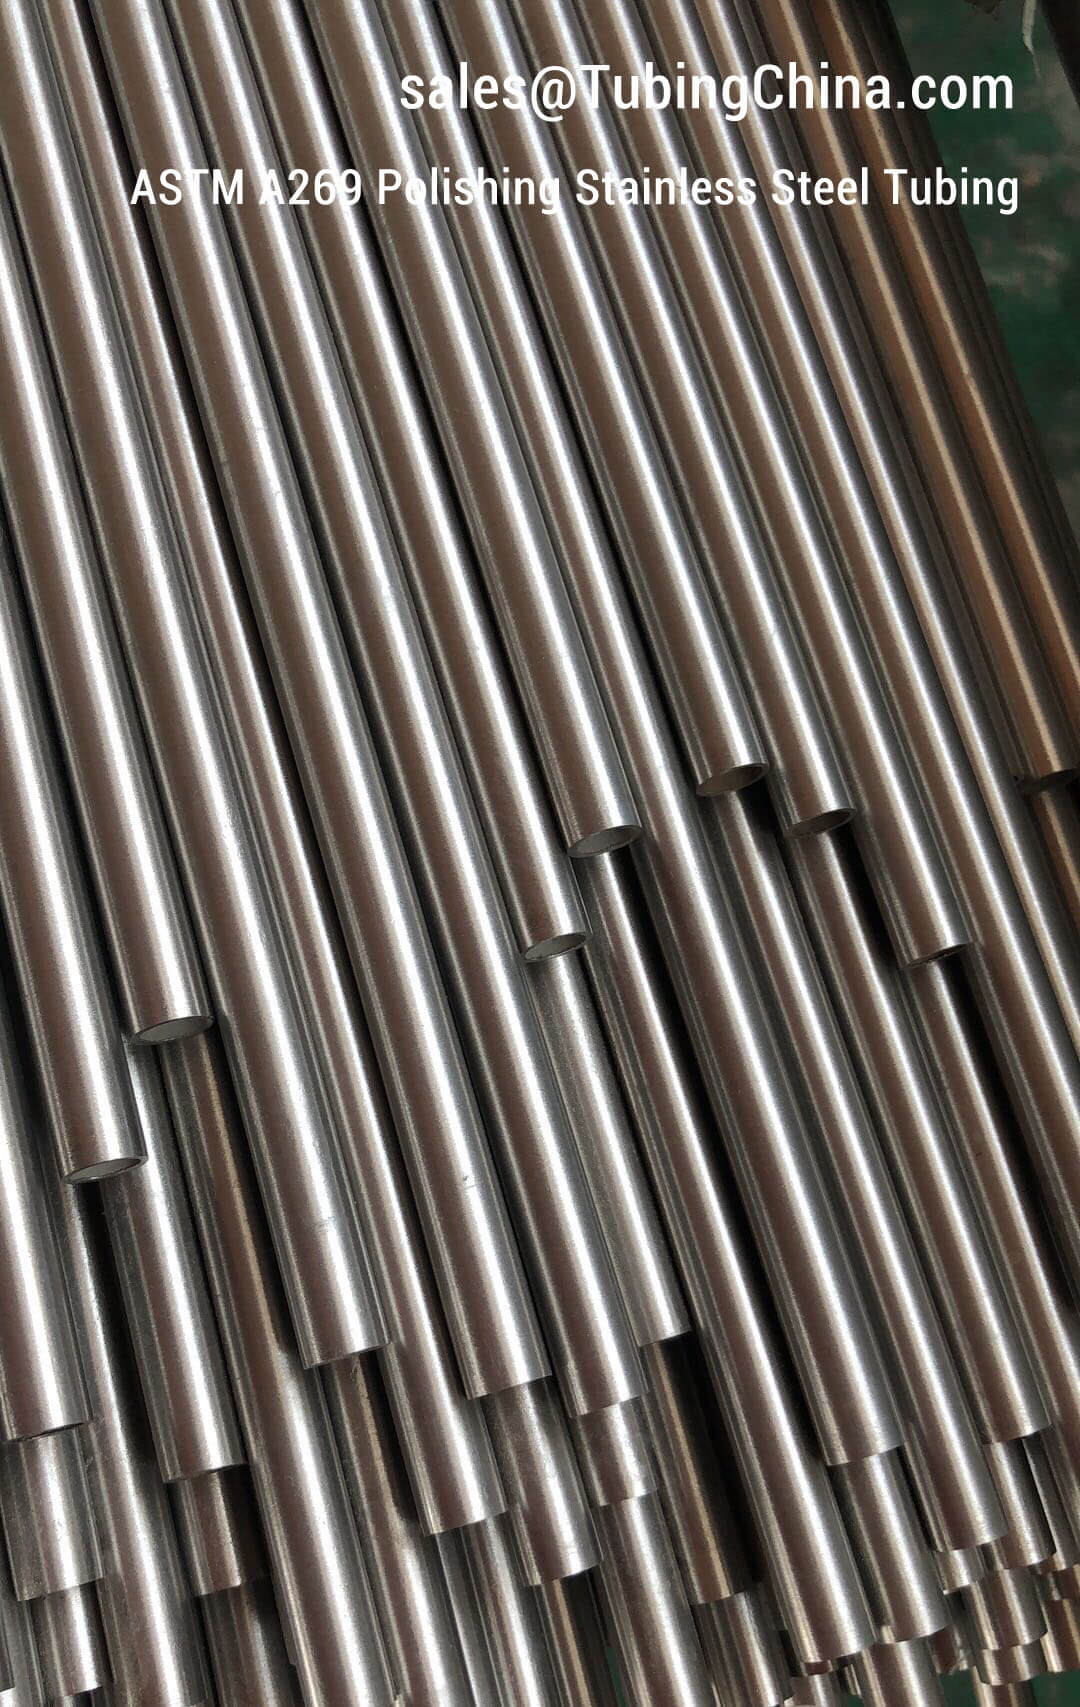 Polishing Stainless Steel Pipe - ASTM A269 ASTM A213 TP304